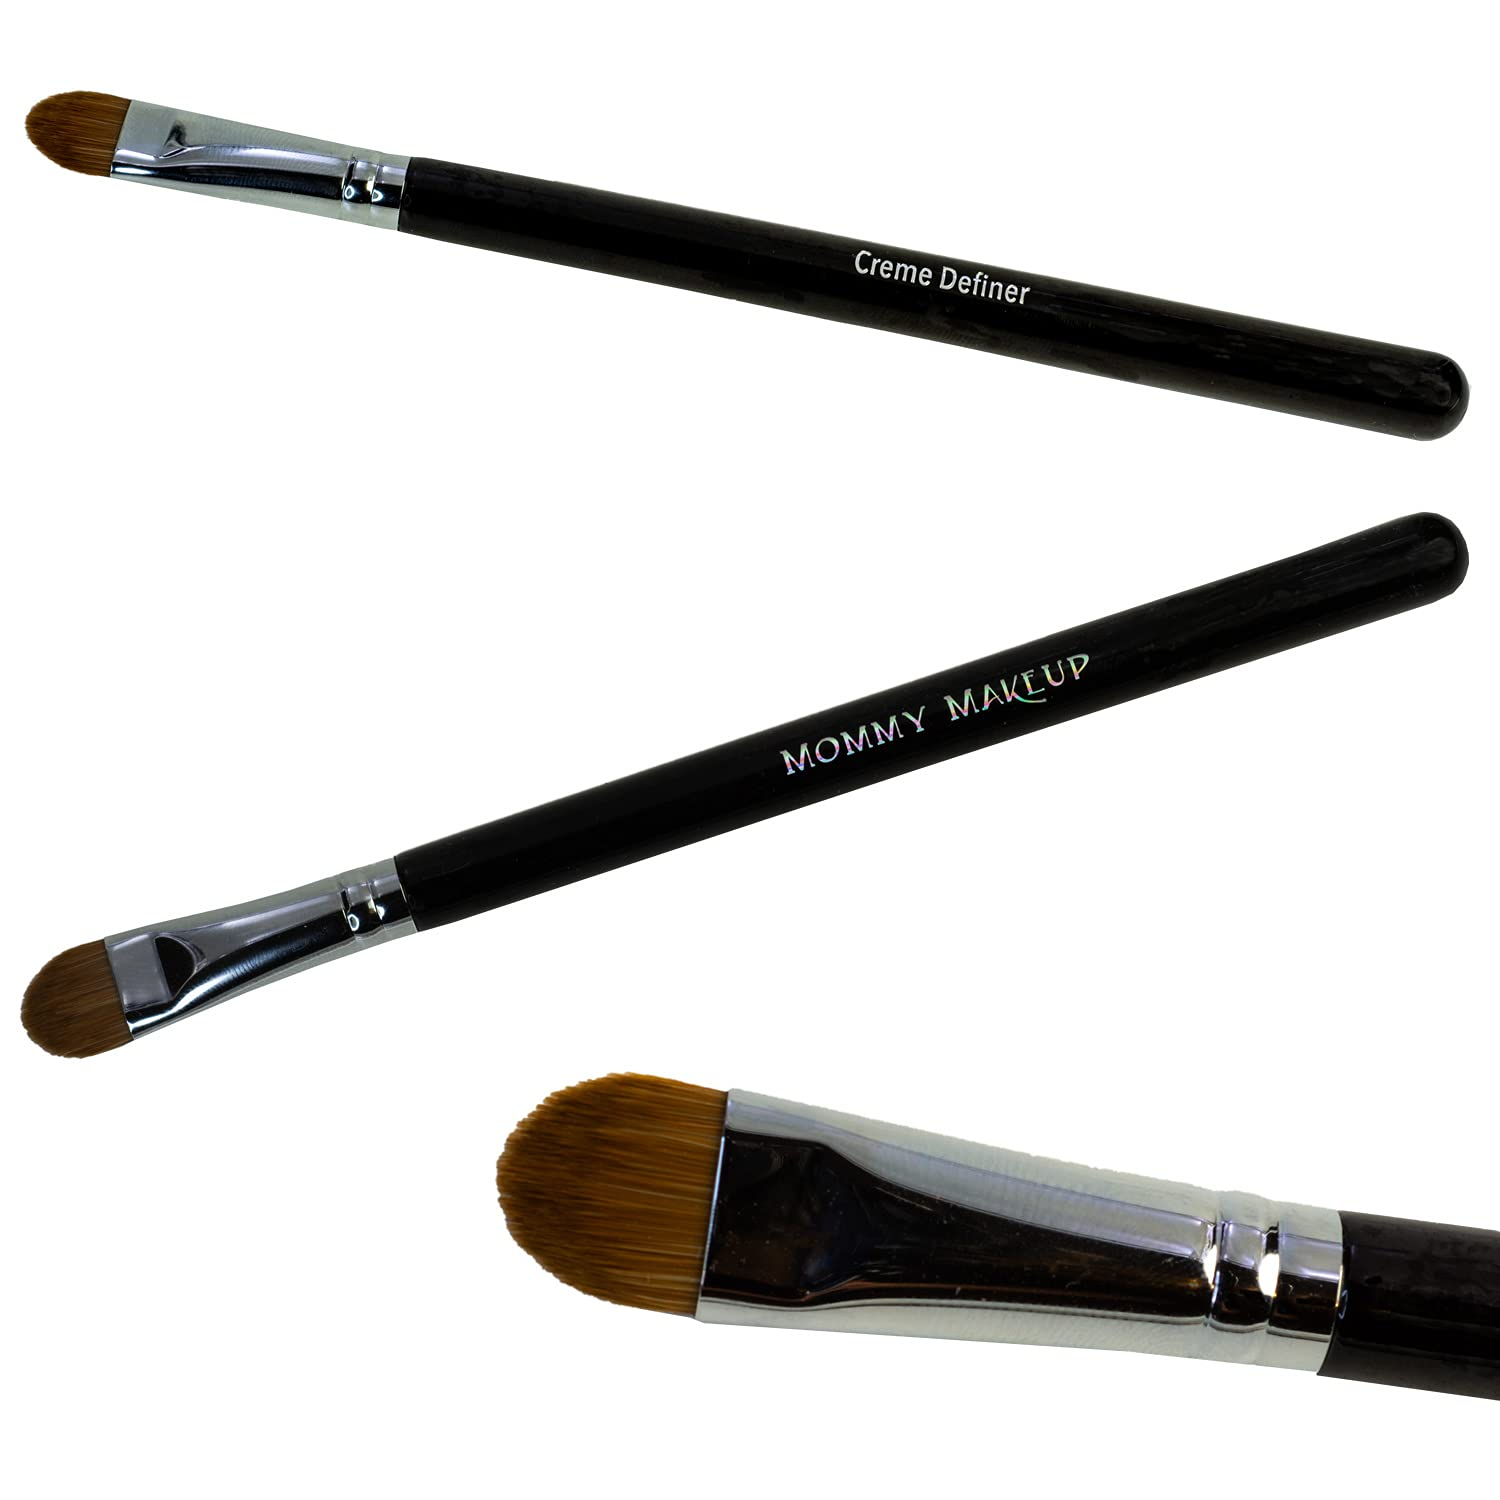 Mommy Makeup 35% OFF Creme Definer Eyeshadow Brush We OFFer at cheap prices